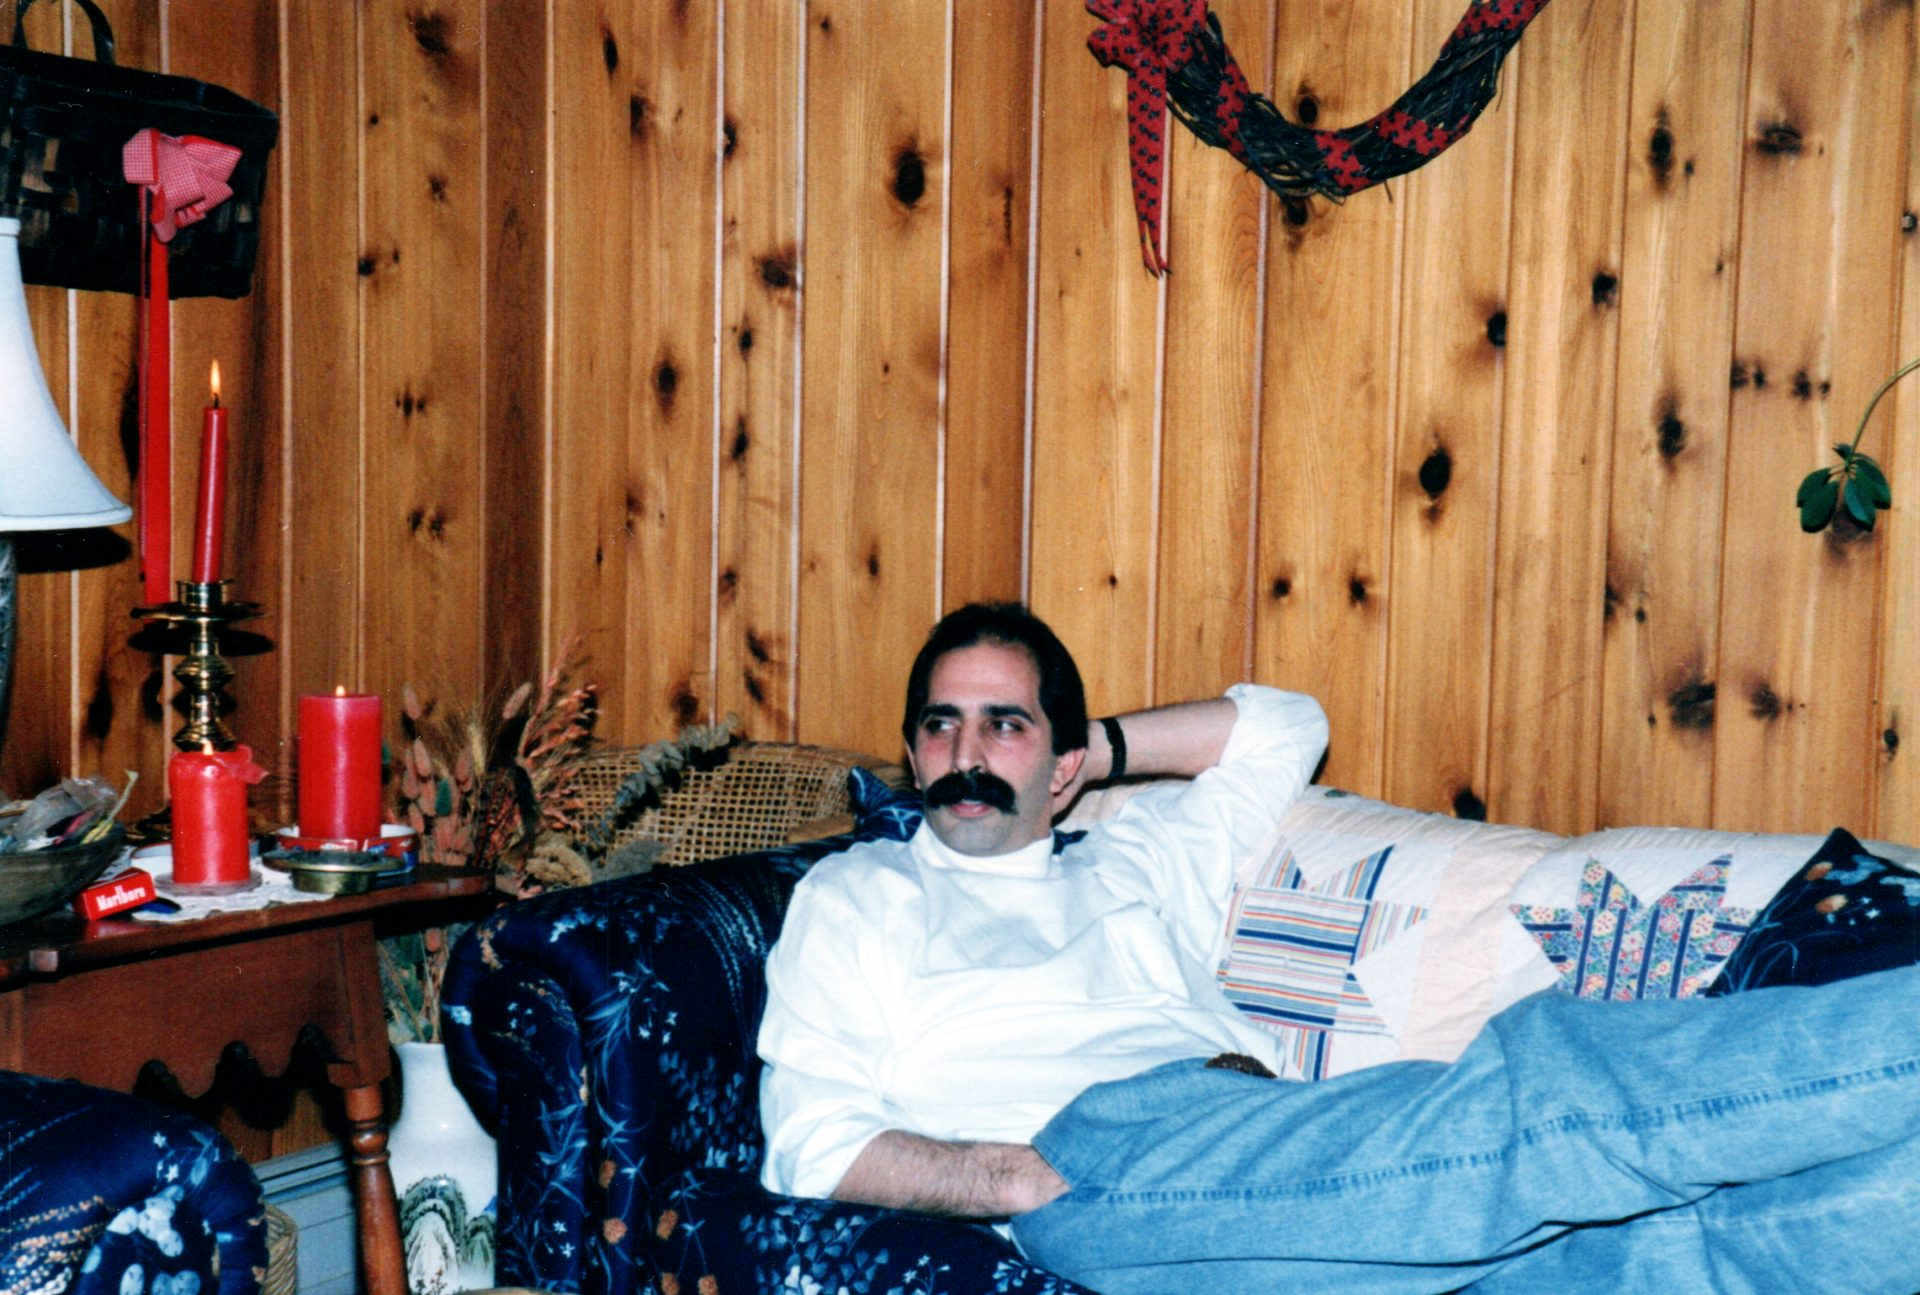 Jimmy at home in Farmington, CT